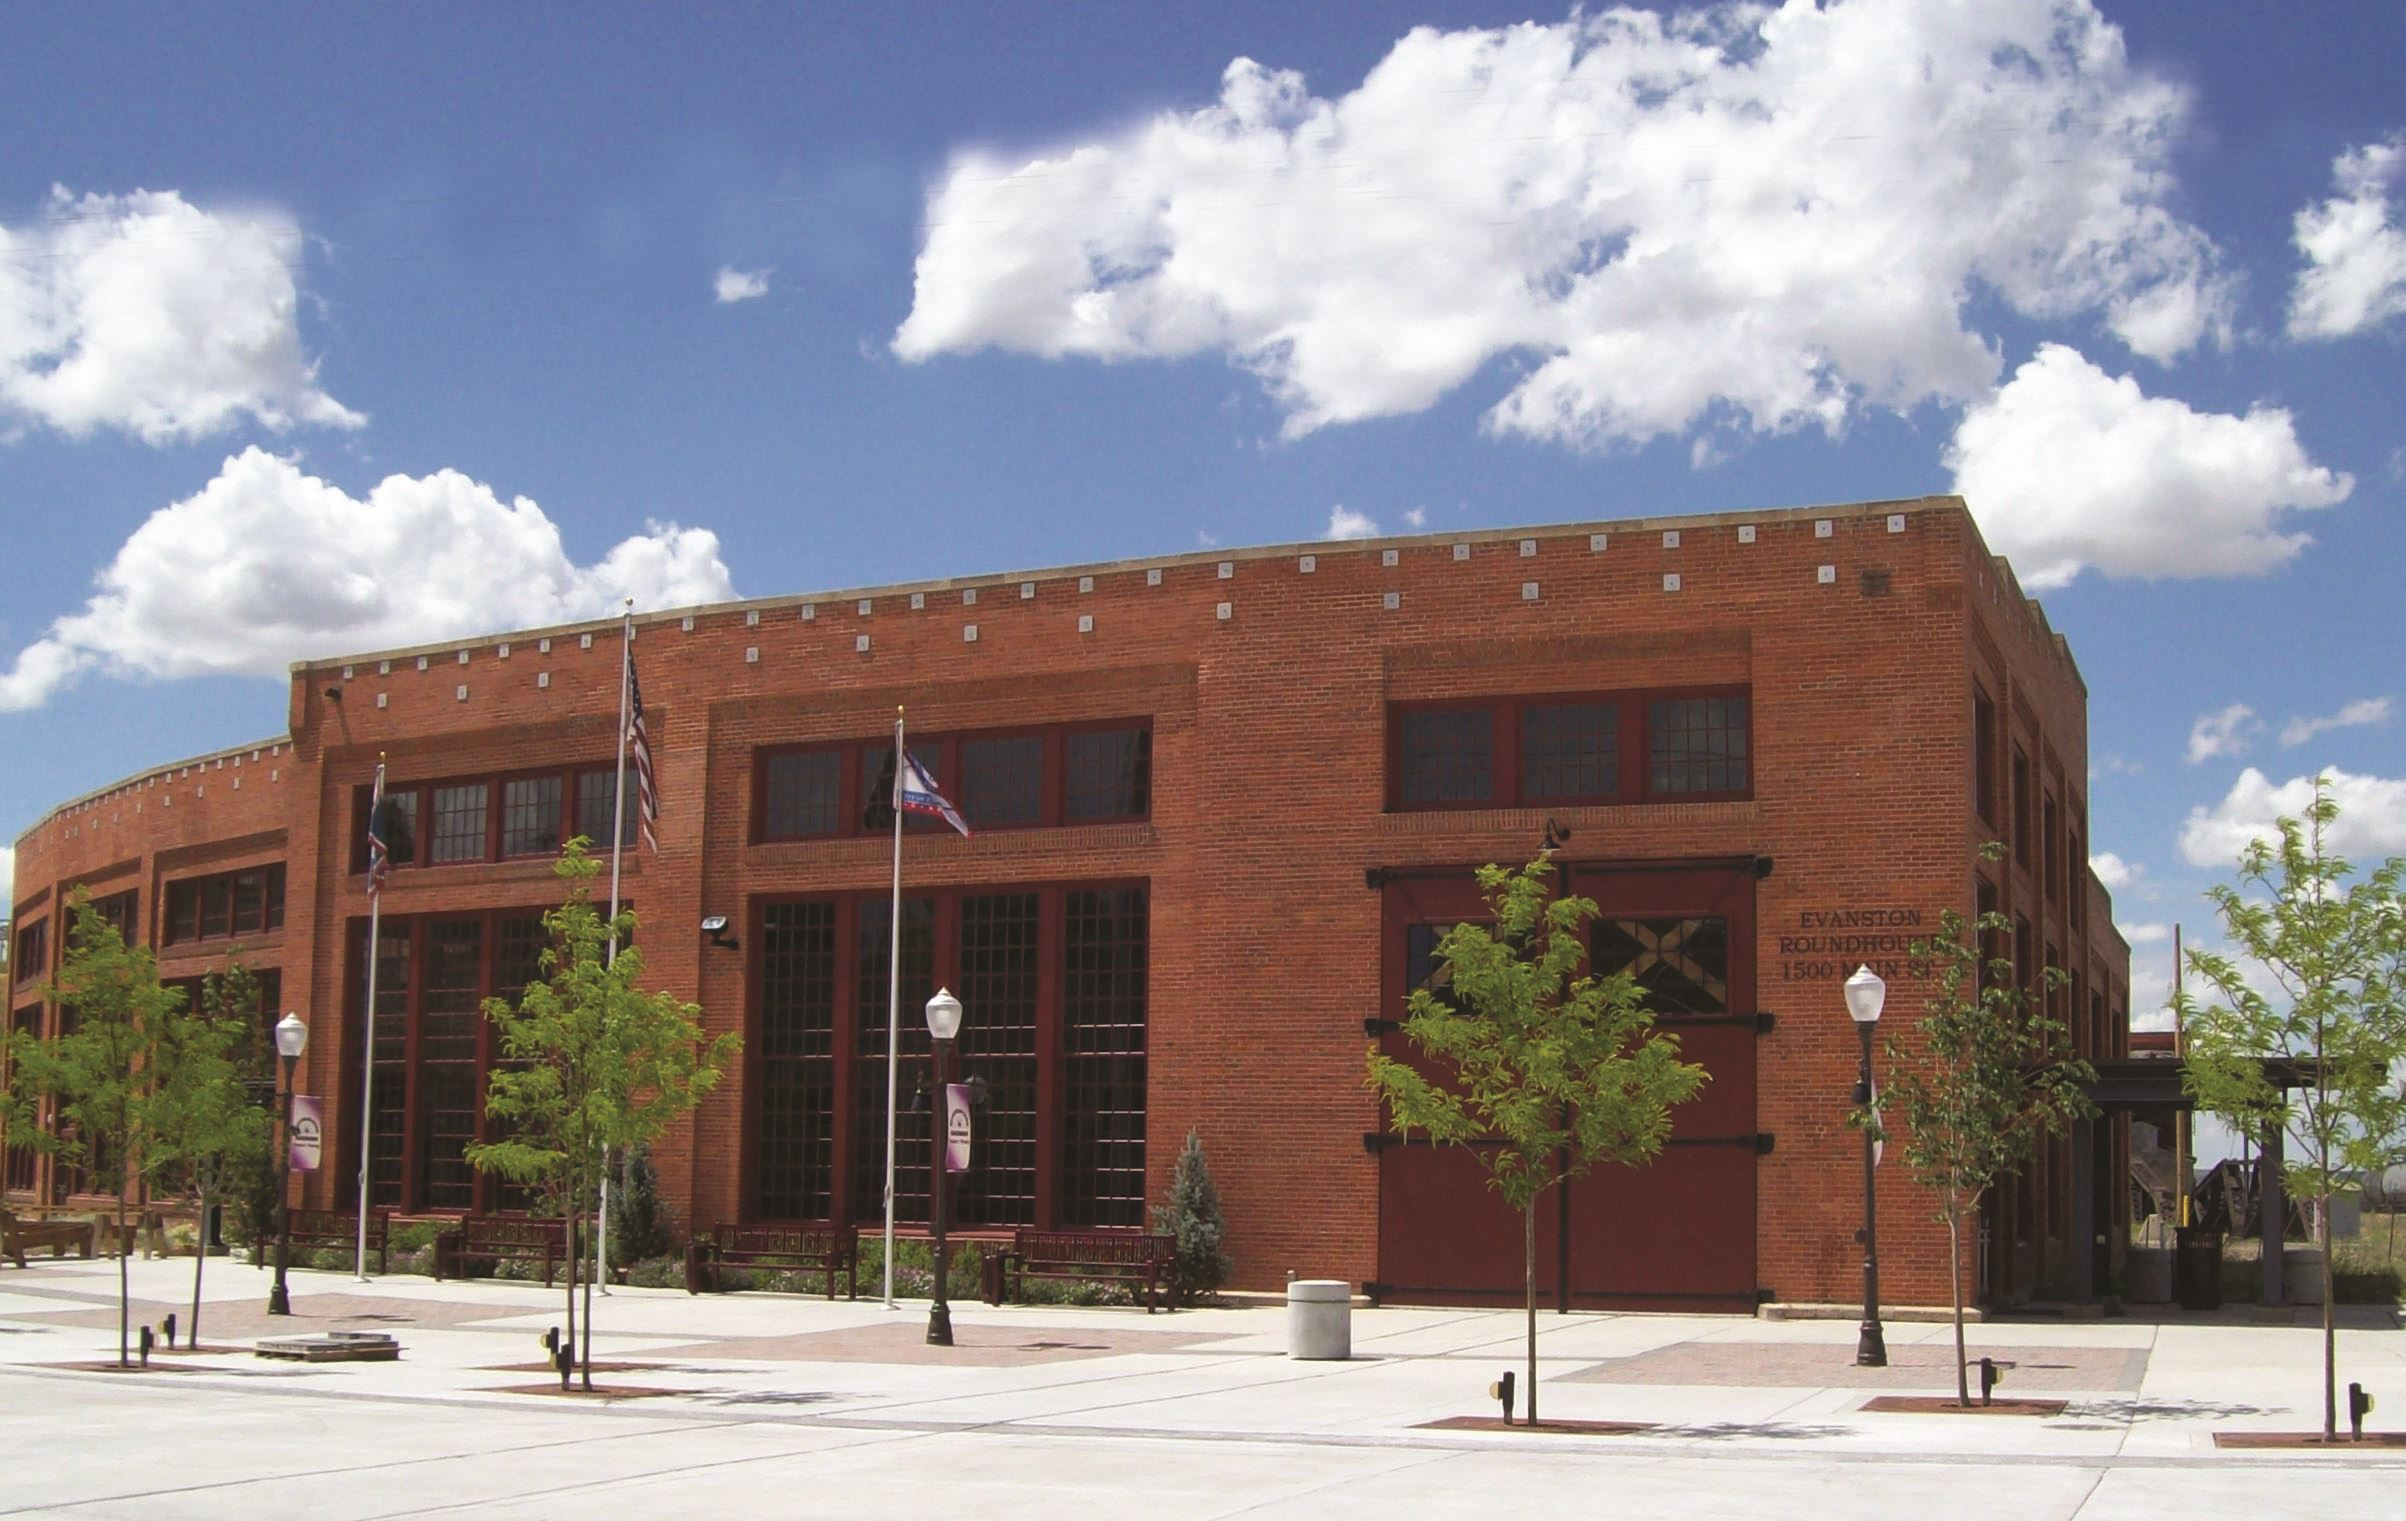 City of Evanston, WY - Official Website